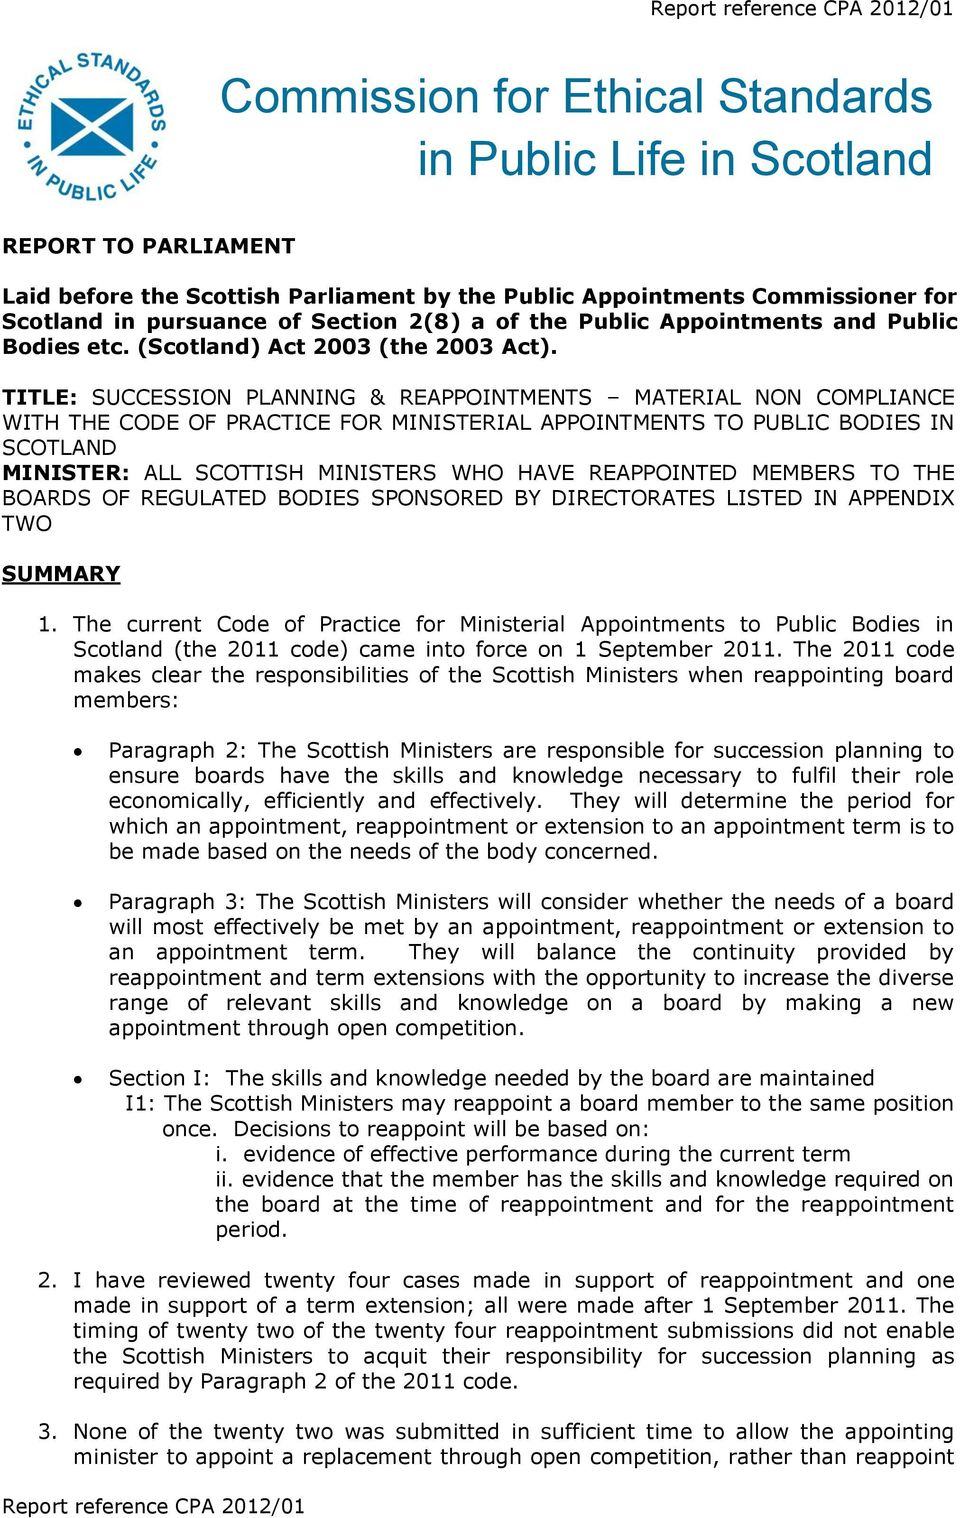 TITLE: SUCCESSION PLANNING & REAPPOINTMENTS MATERIAL NON COMPLIANCE WITH THE CODE OF PRACTICE FOR MINISTERIAL APPOINTMENTS TO PUBLIC BODIES IN SCOTLAND MINISTER: ALL SCOTTISH MINISTERS WHO HAVE